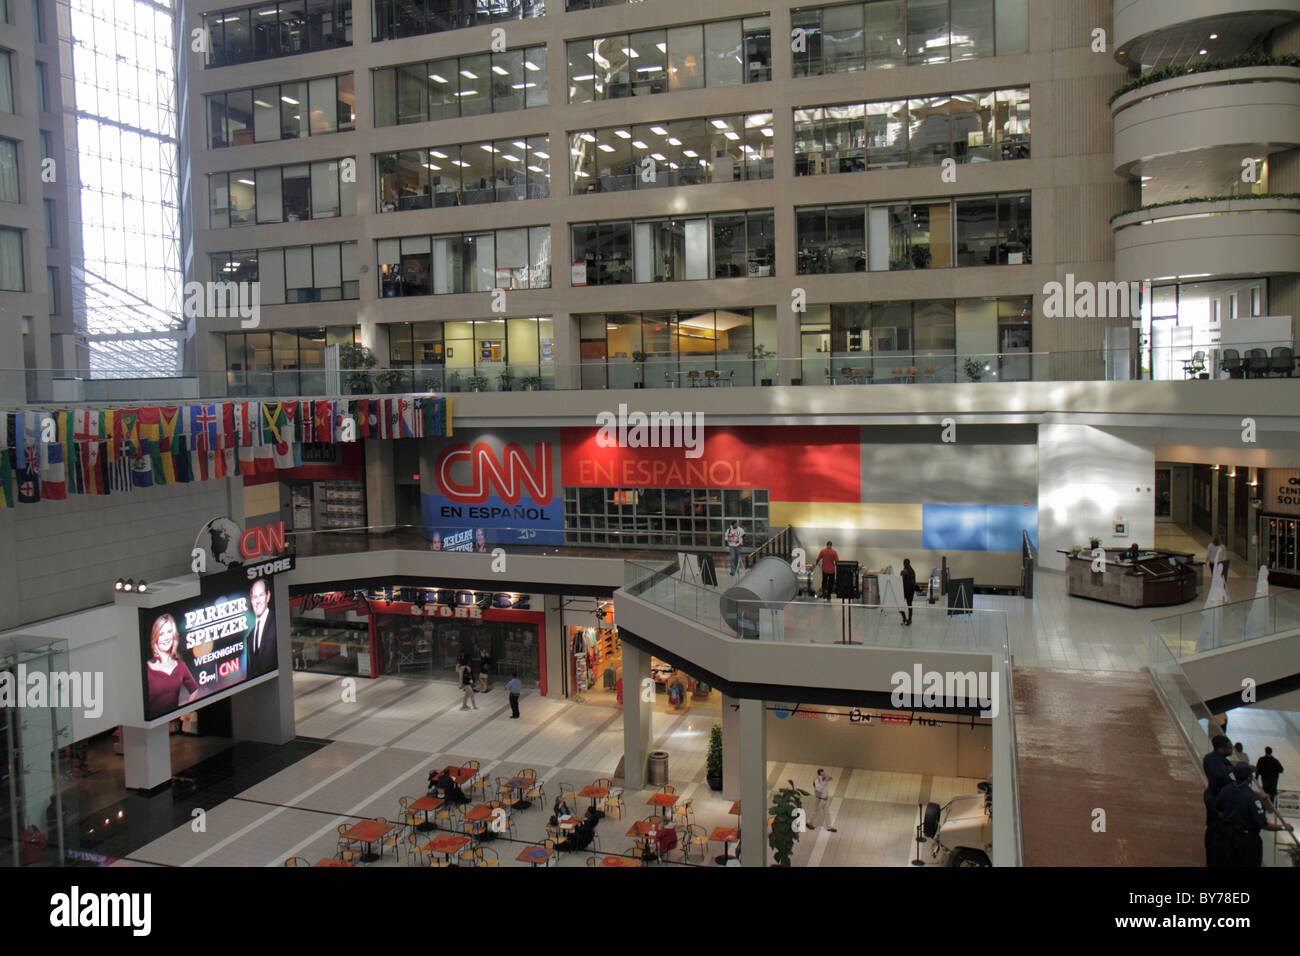 Atlanta géorgie cnn center atrium store shopping en espanol cnn